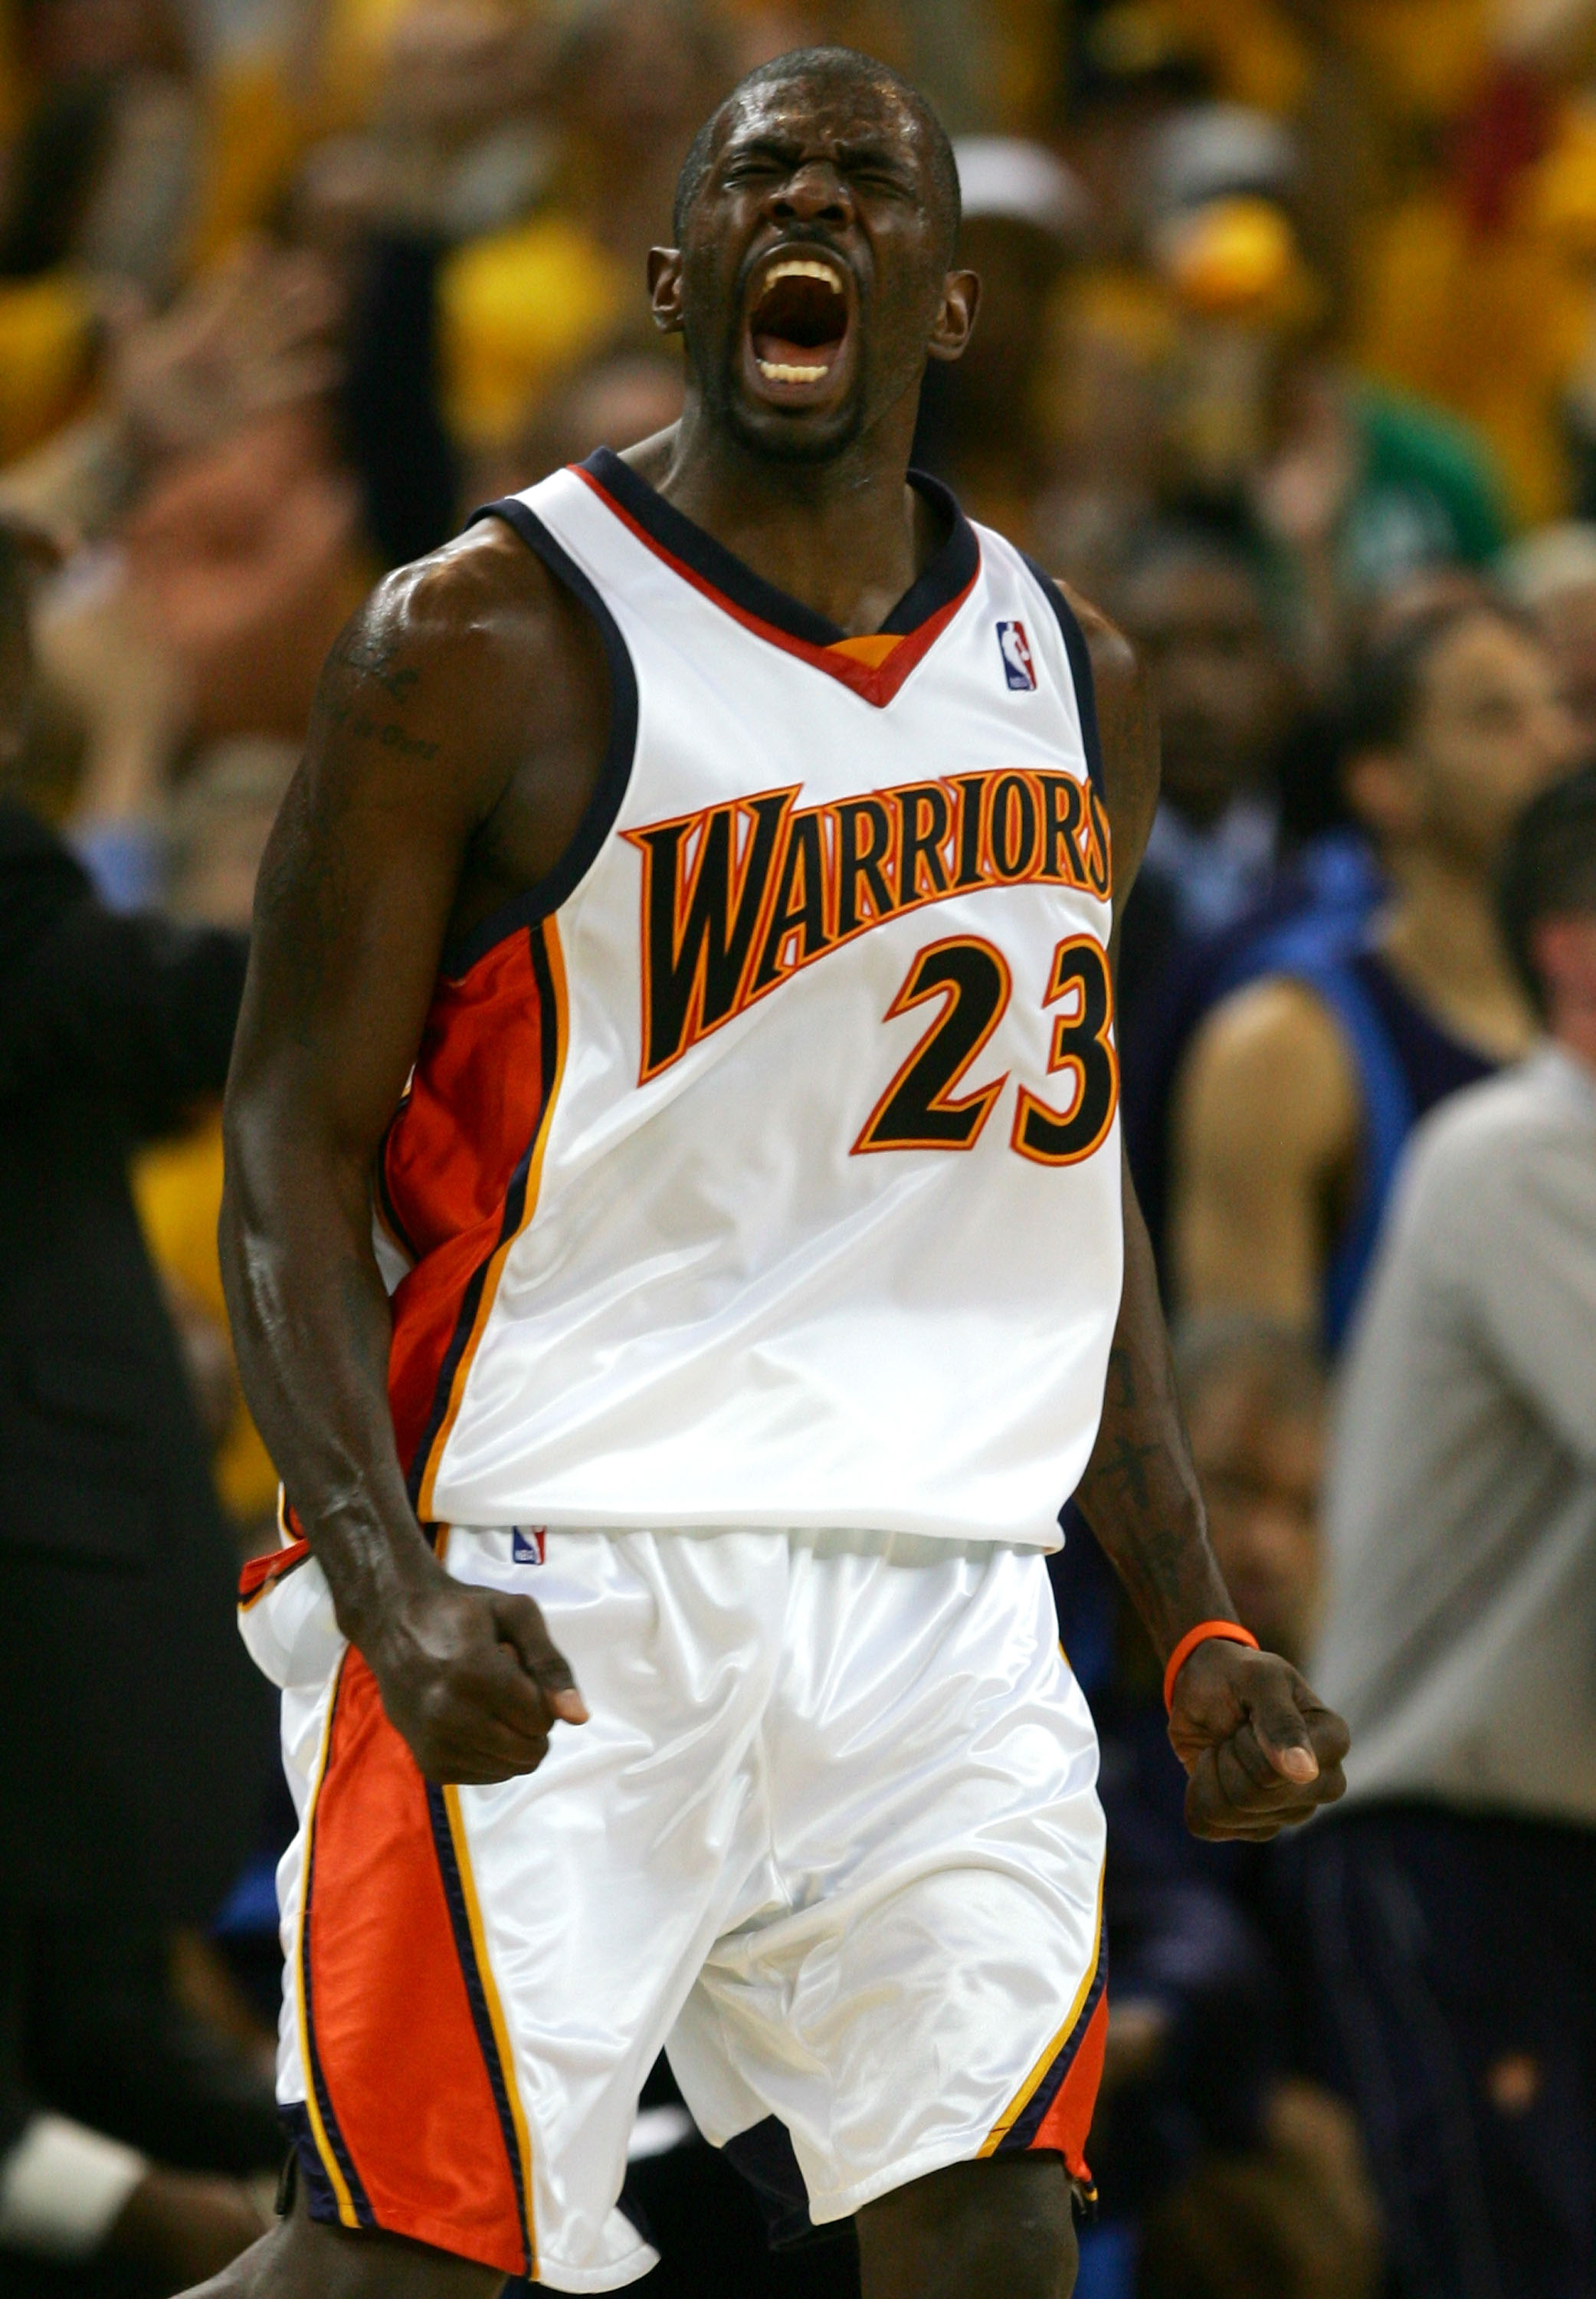 OAKLAND, CA - MAY 03:  Jason Richardson #23 of the Golden State Warriors celebrates after hitting a three pointer against the Dallas Mavericks in Game 6 of the Western Conference Quarterfinals during the 2007 NBA Playoffs on May 3, 2007 at Oracle Arena in